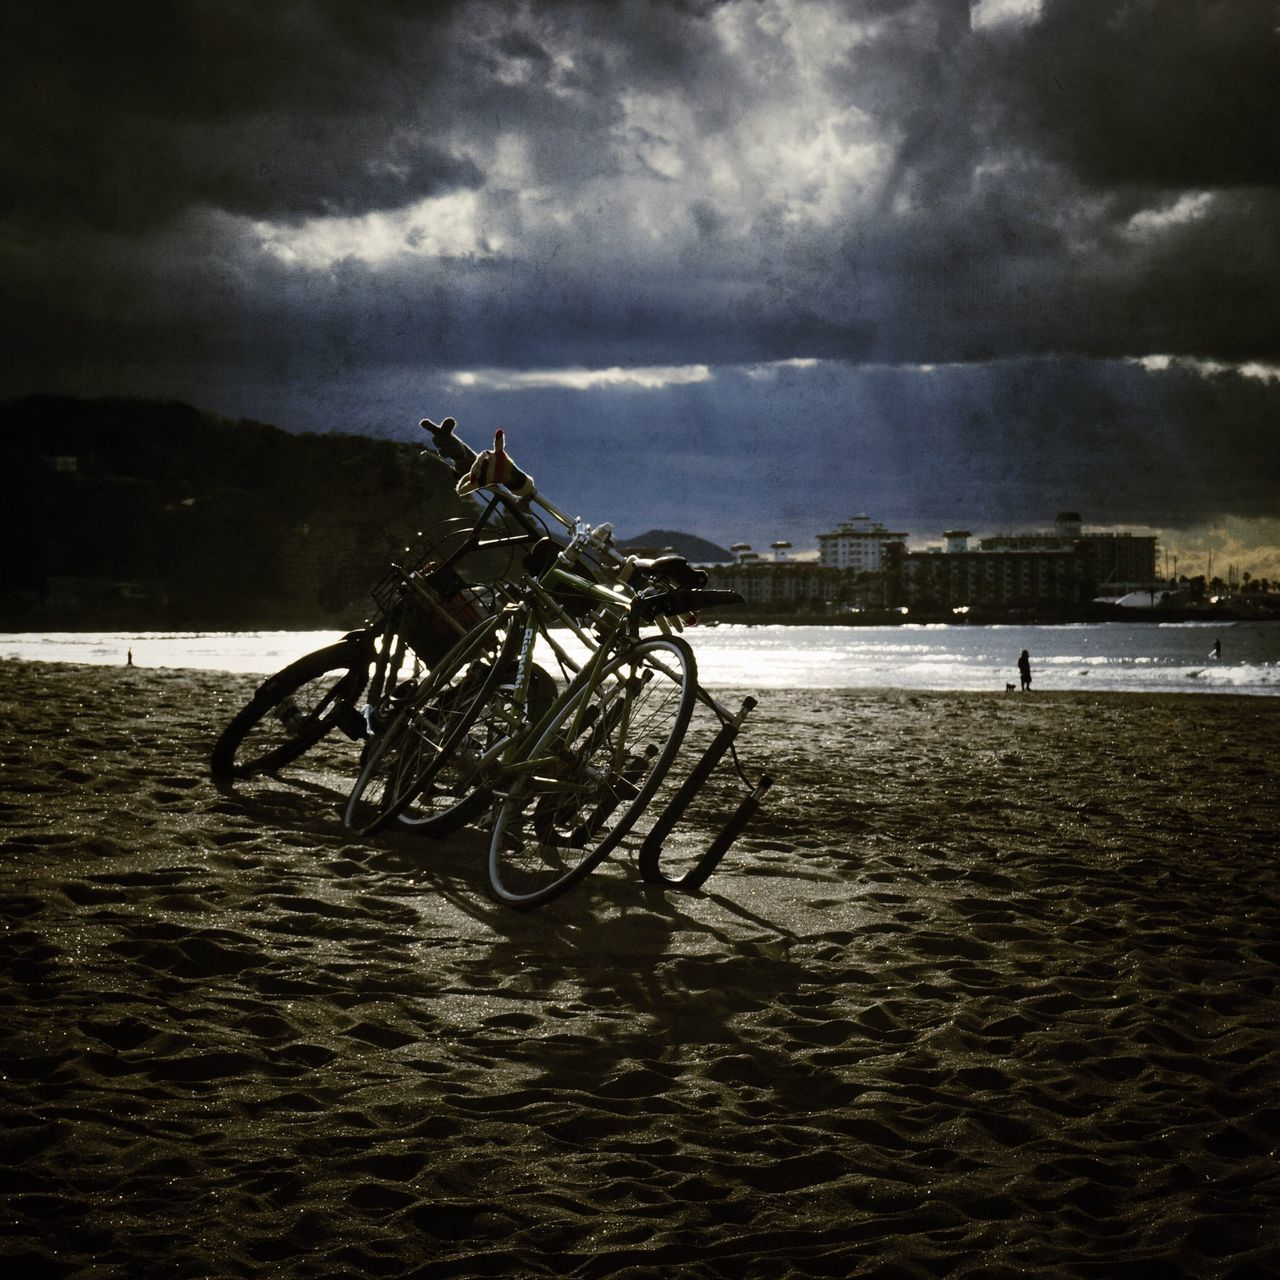 sky, cloud - sky, water, sea, beach, dusk, sand, bicycle, storm cloud, outdoors, no people, transportation, nature, day, horizon over water